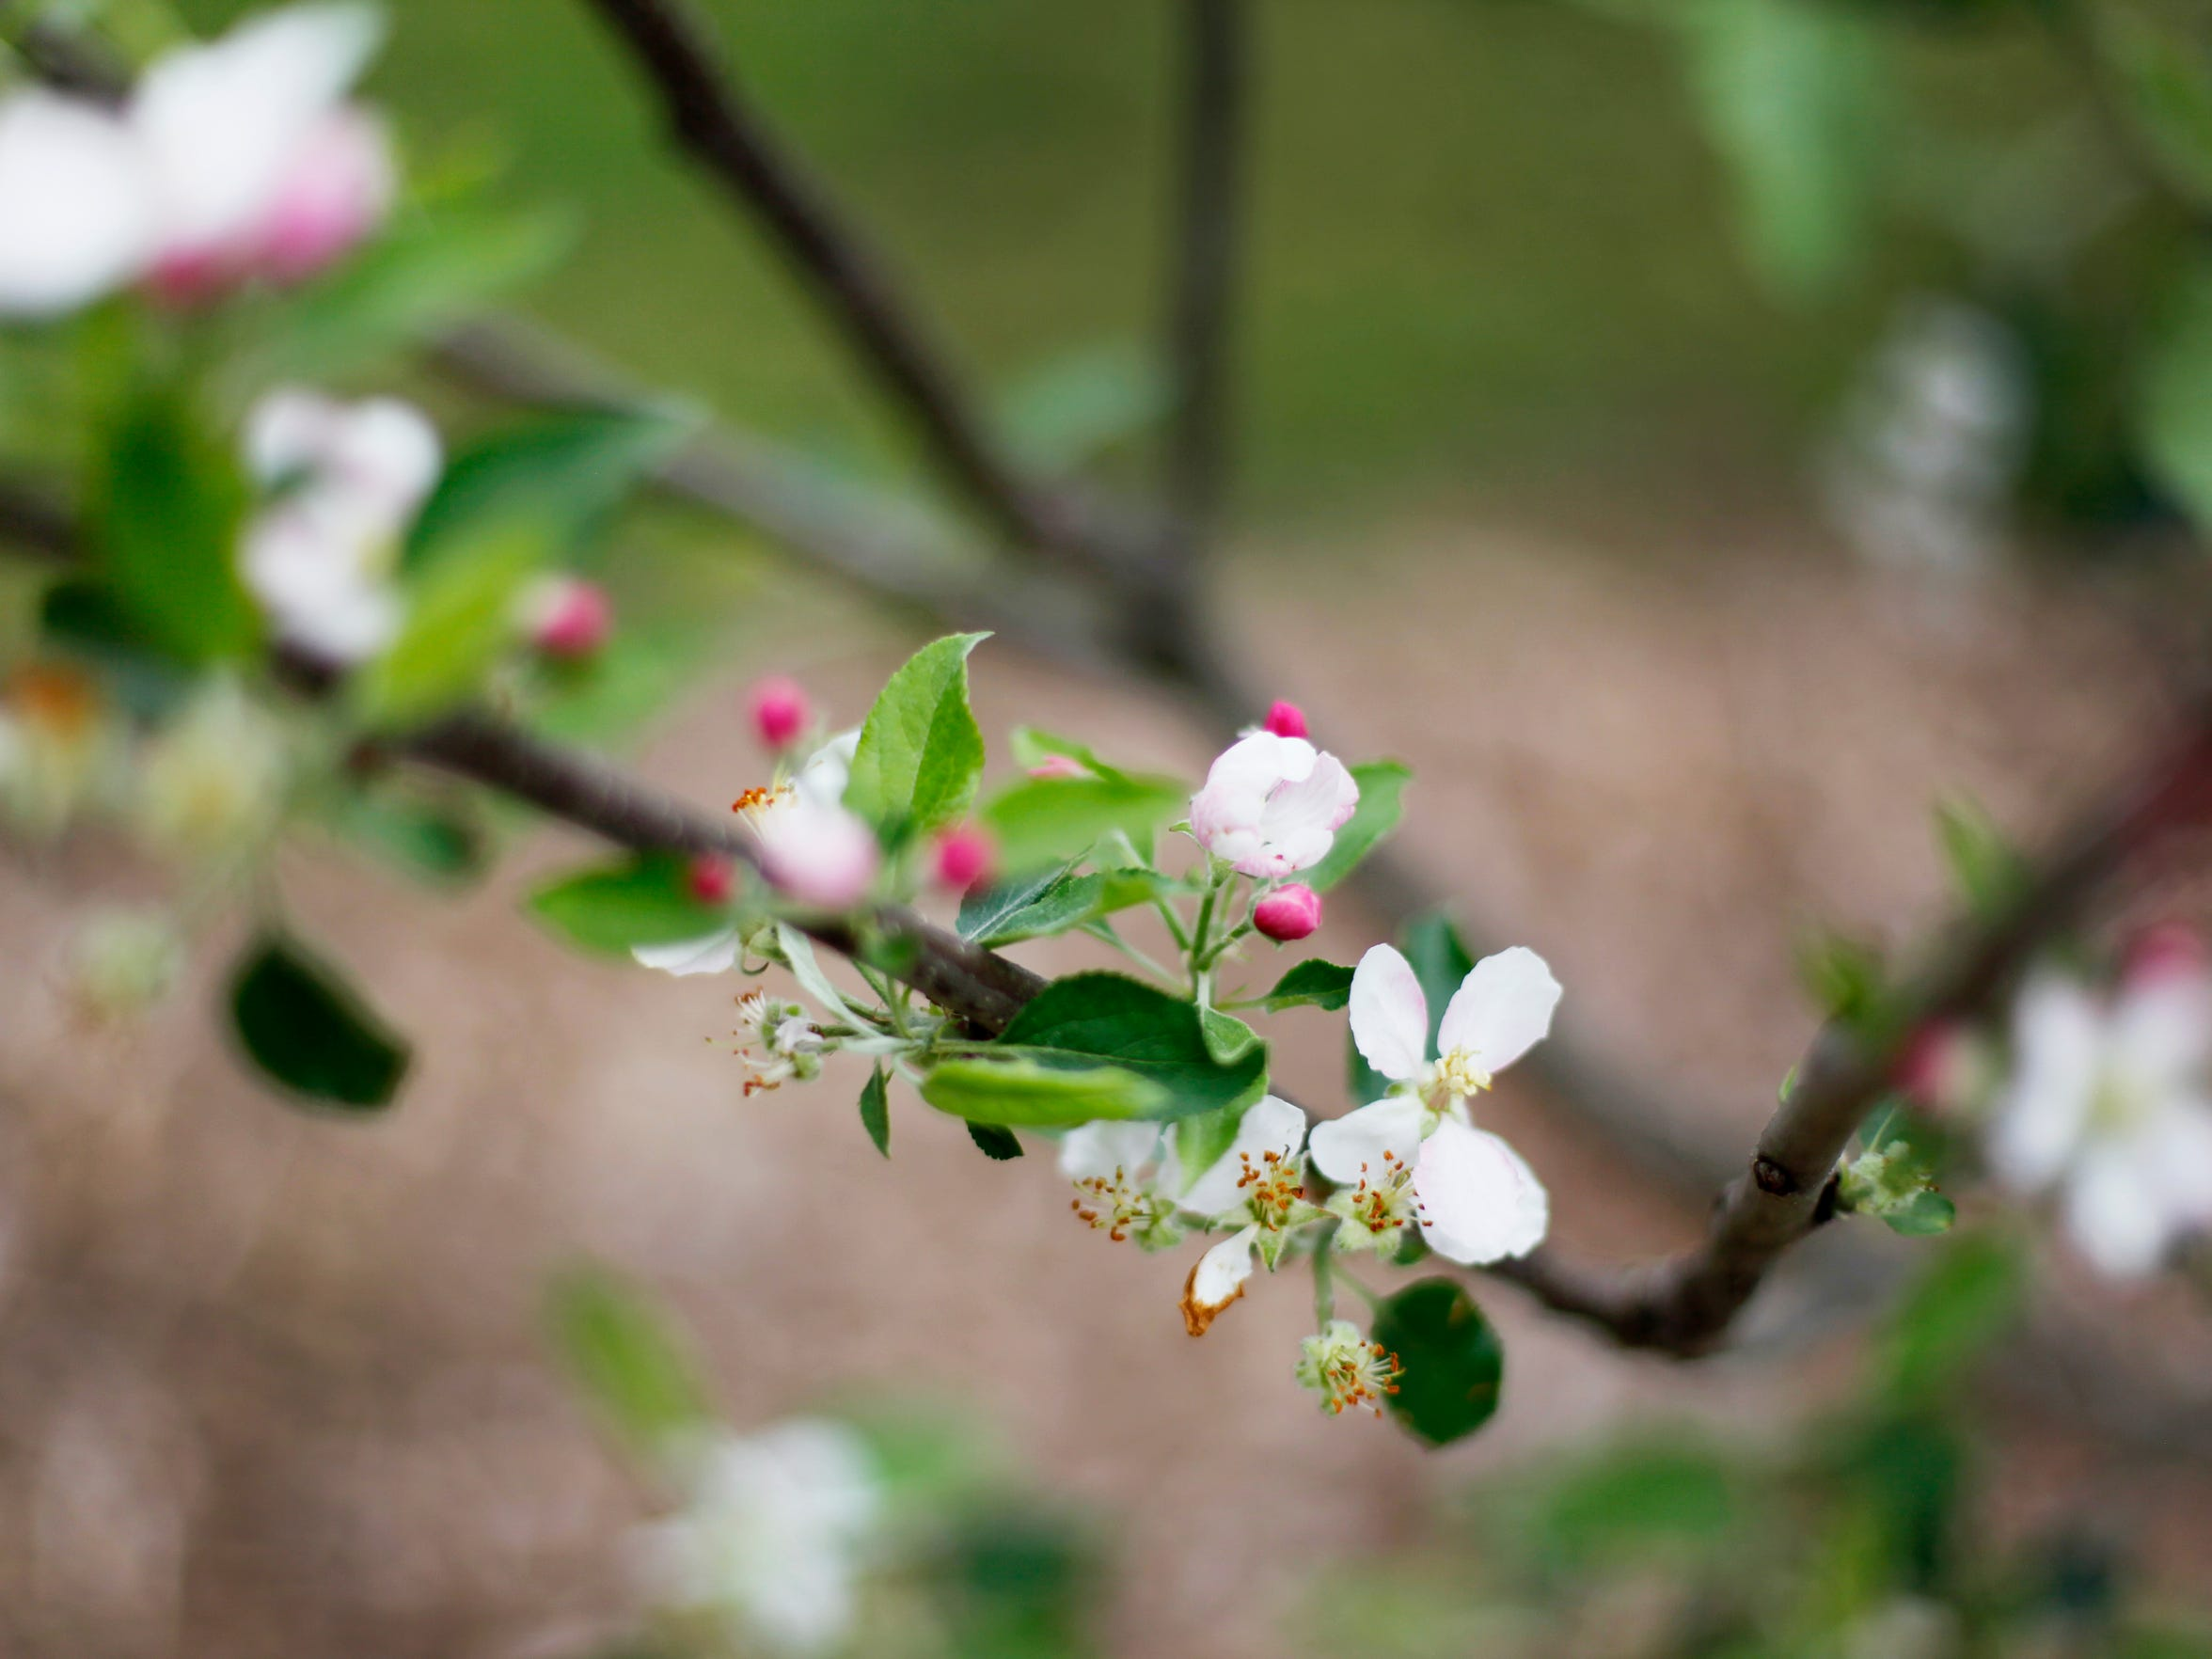 Pink blossoms on a young apple tree at Congregation Beth Israel April 20, 2017.